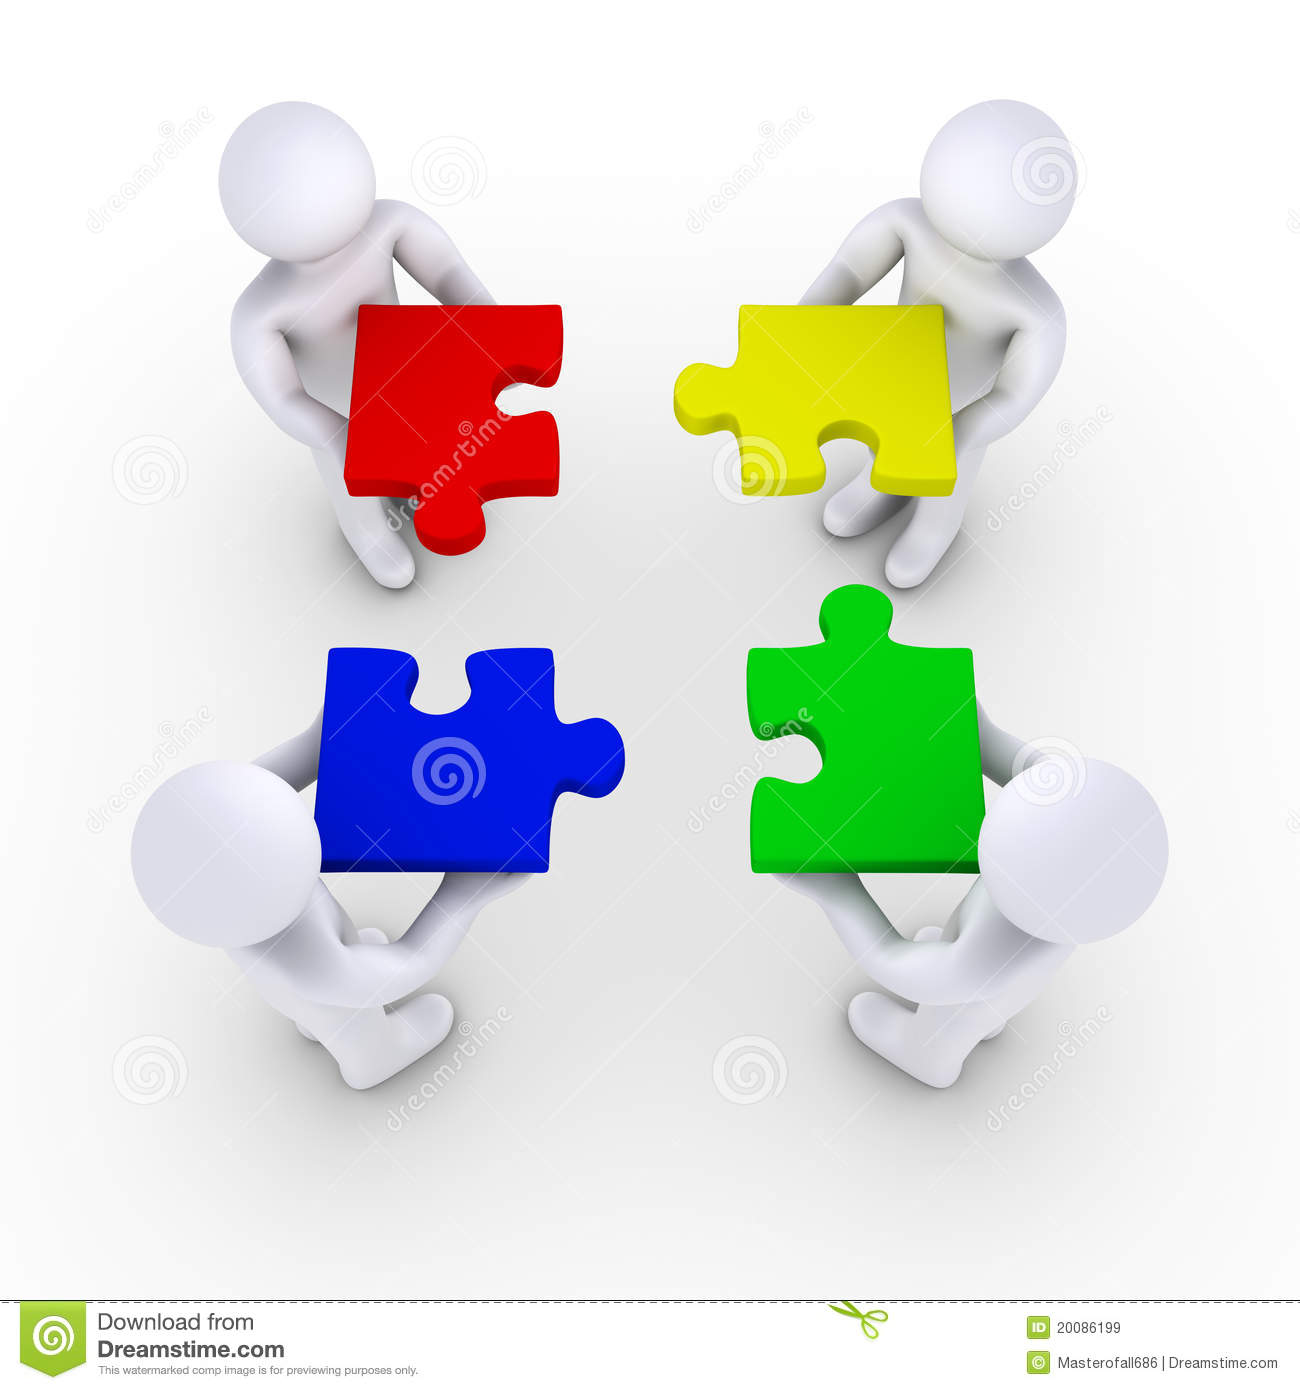 four color map problem with Royalty Free Stock Images Four People Holding Puzzle Pieces Image20086199 on Why 4 And Not 5 furthermore Le Symbole Electrique as well Textile Plants Are Dhakas Water Problem And Also Its Solution further Thread 362712 as well Royalty Free Stock Images Four People Holding Puzzle Pieces Image20086199.